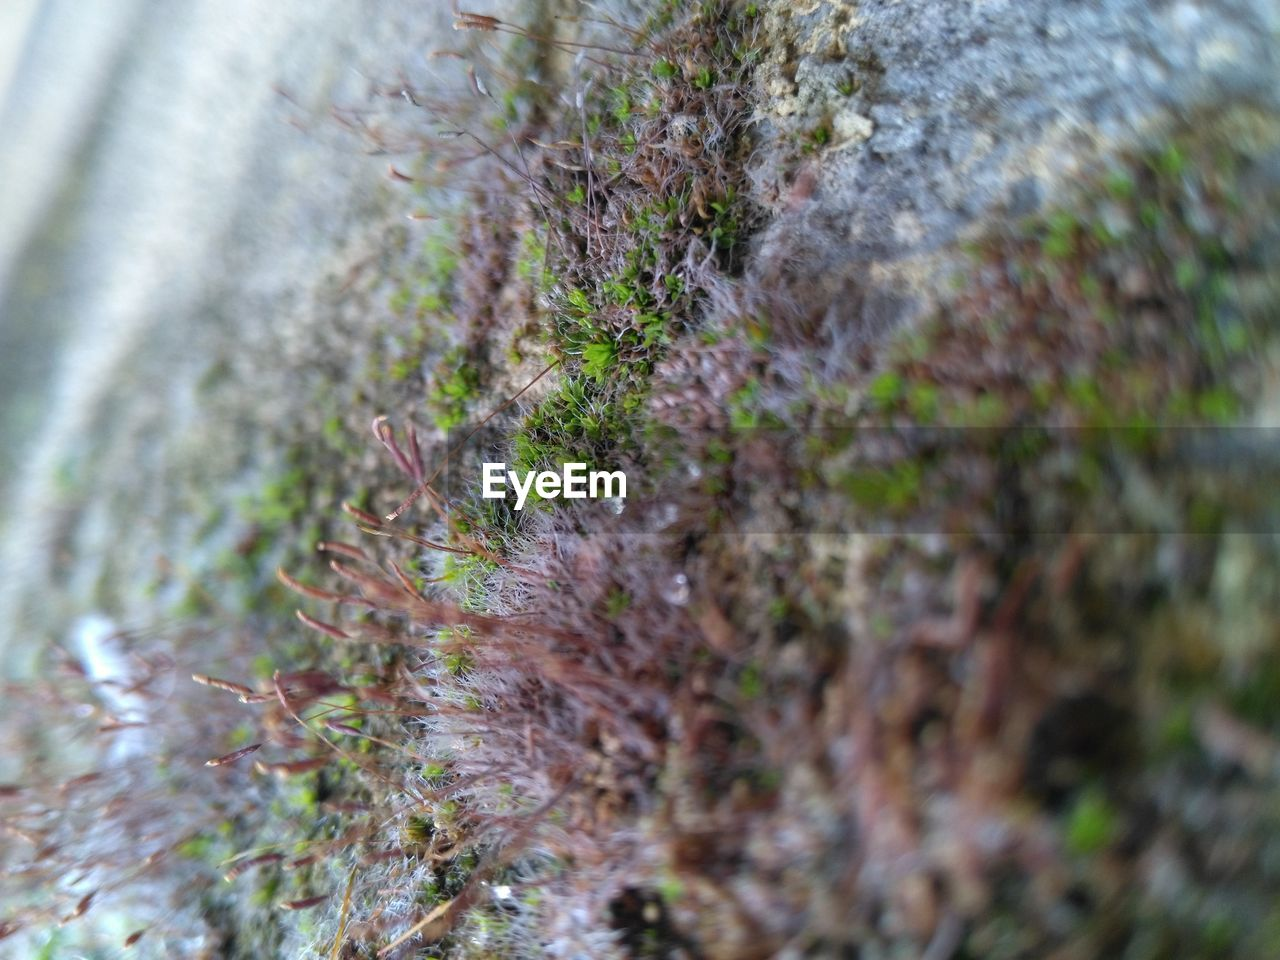 selective focus, nature, growth, no people, outdoors, day, plant, moss, water, close-up, grass, beauty in nature, freshness